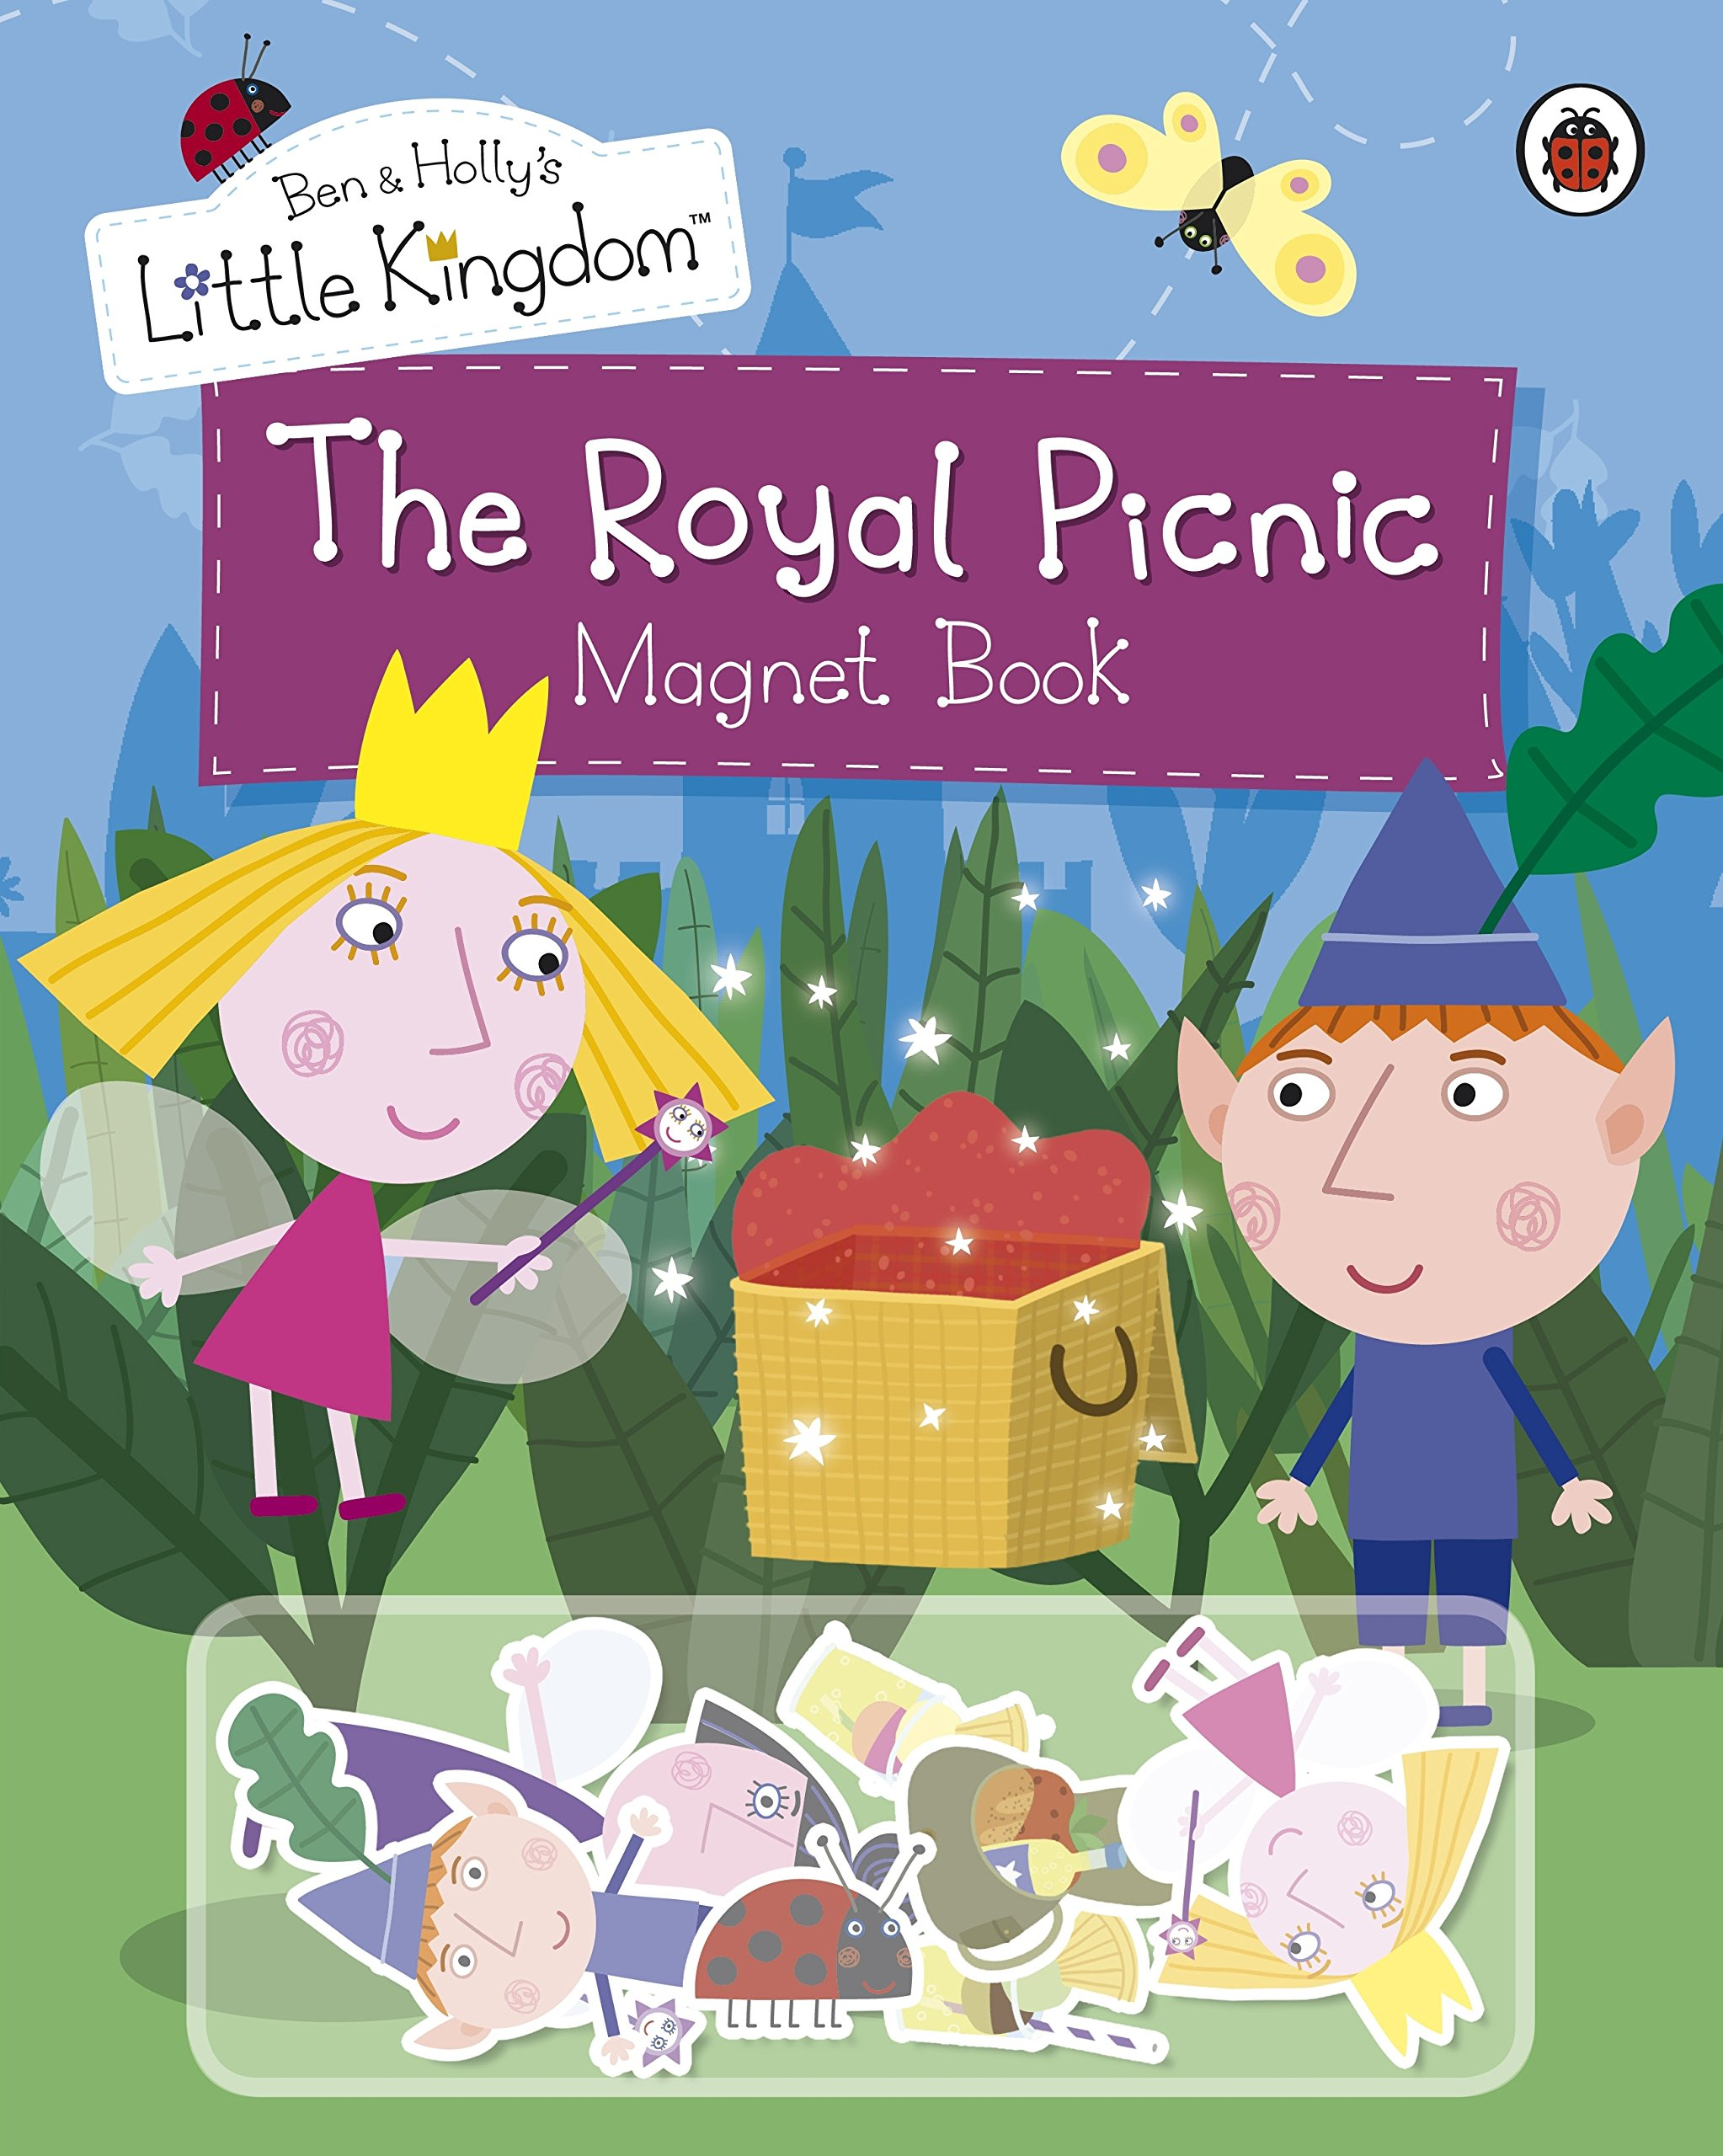 Ben And Holly S Little Kingdom The Royal Picnic Magnet Book Ben Holly S Little Kingdom Amazon Co Uk Ben And Holly S Little Kingdom 9781409305330 Books